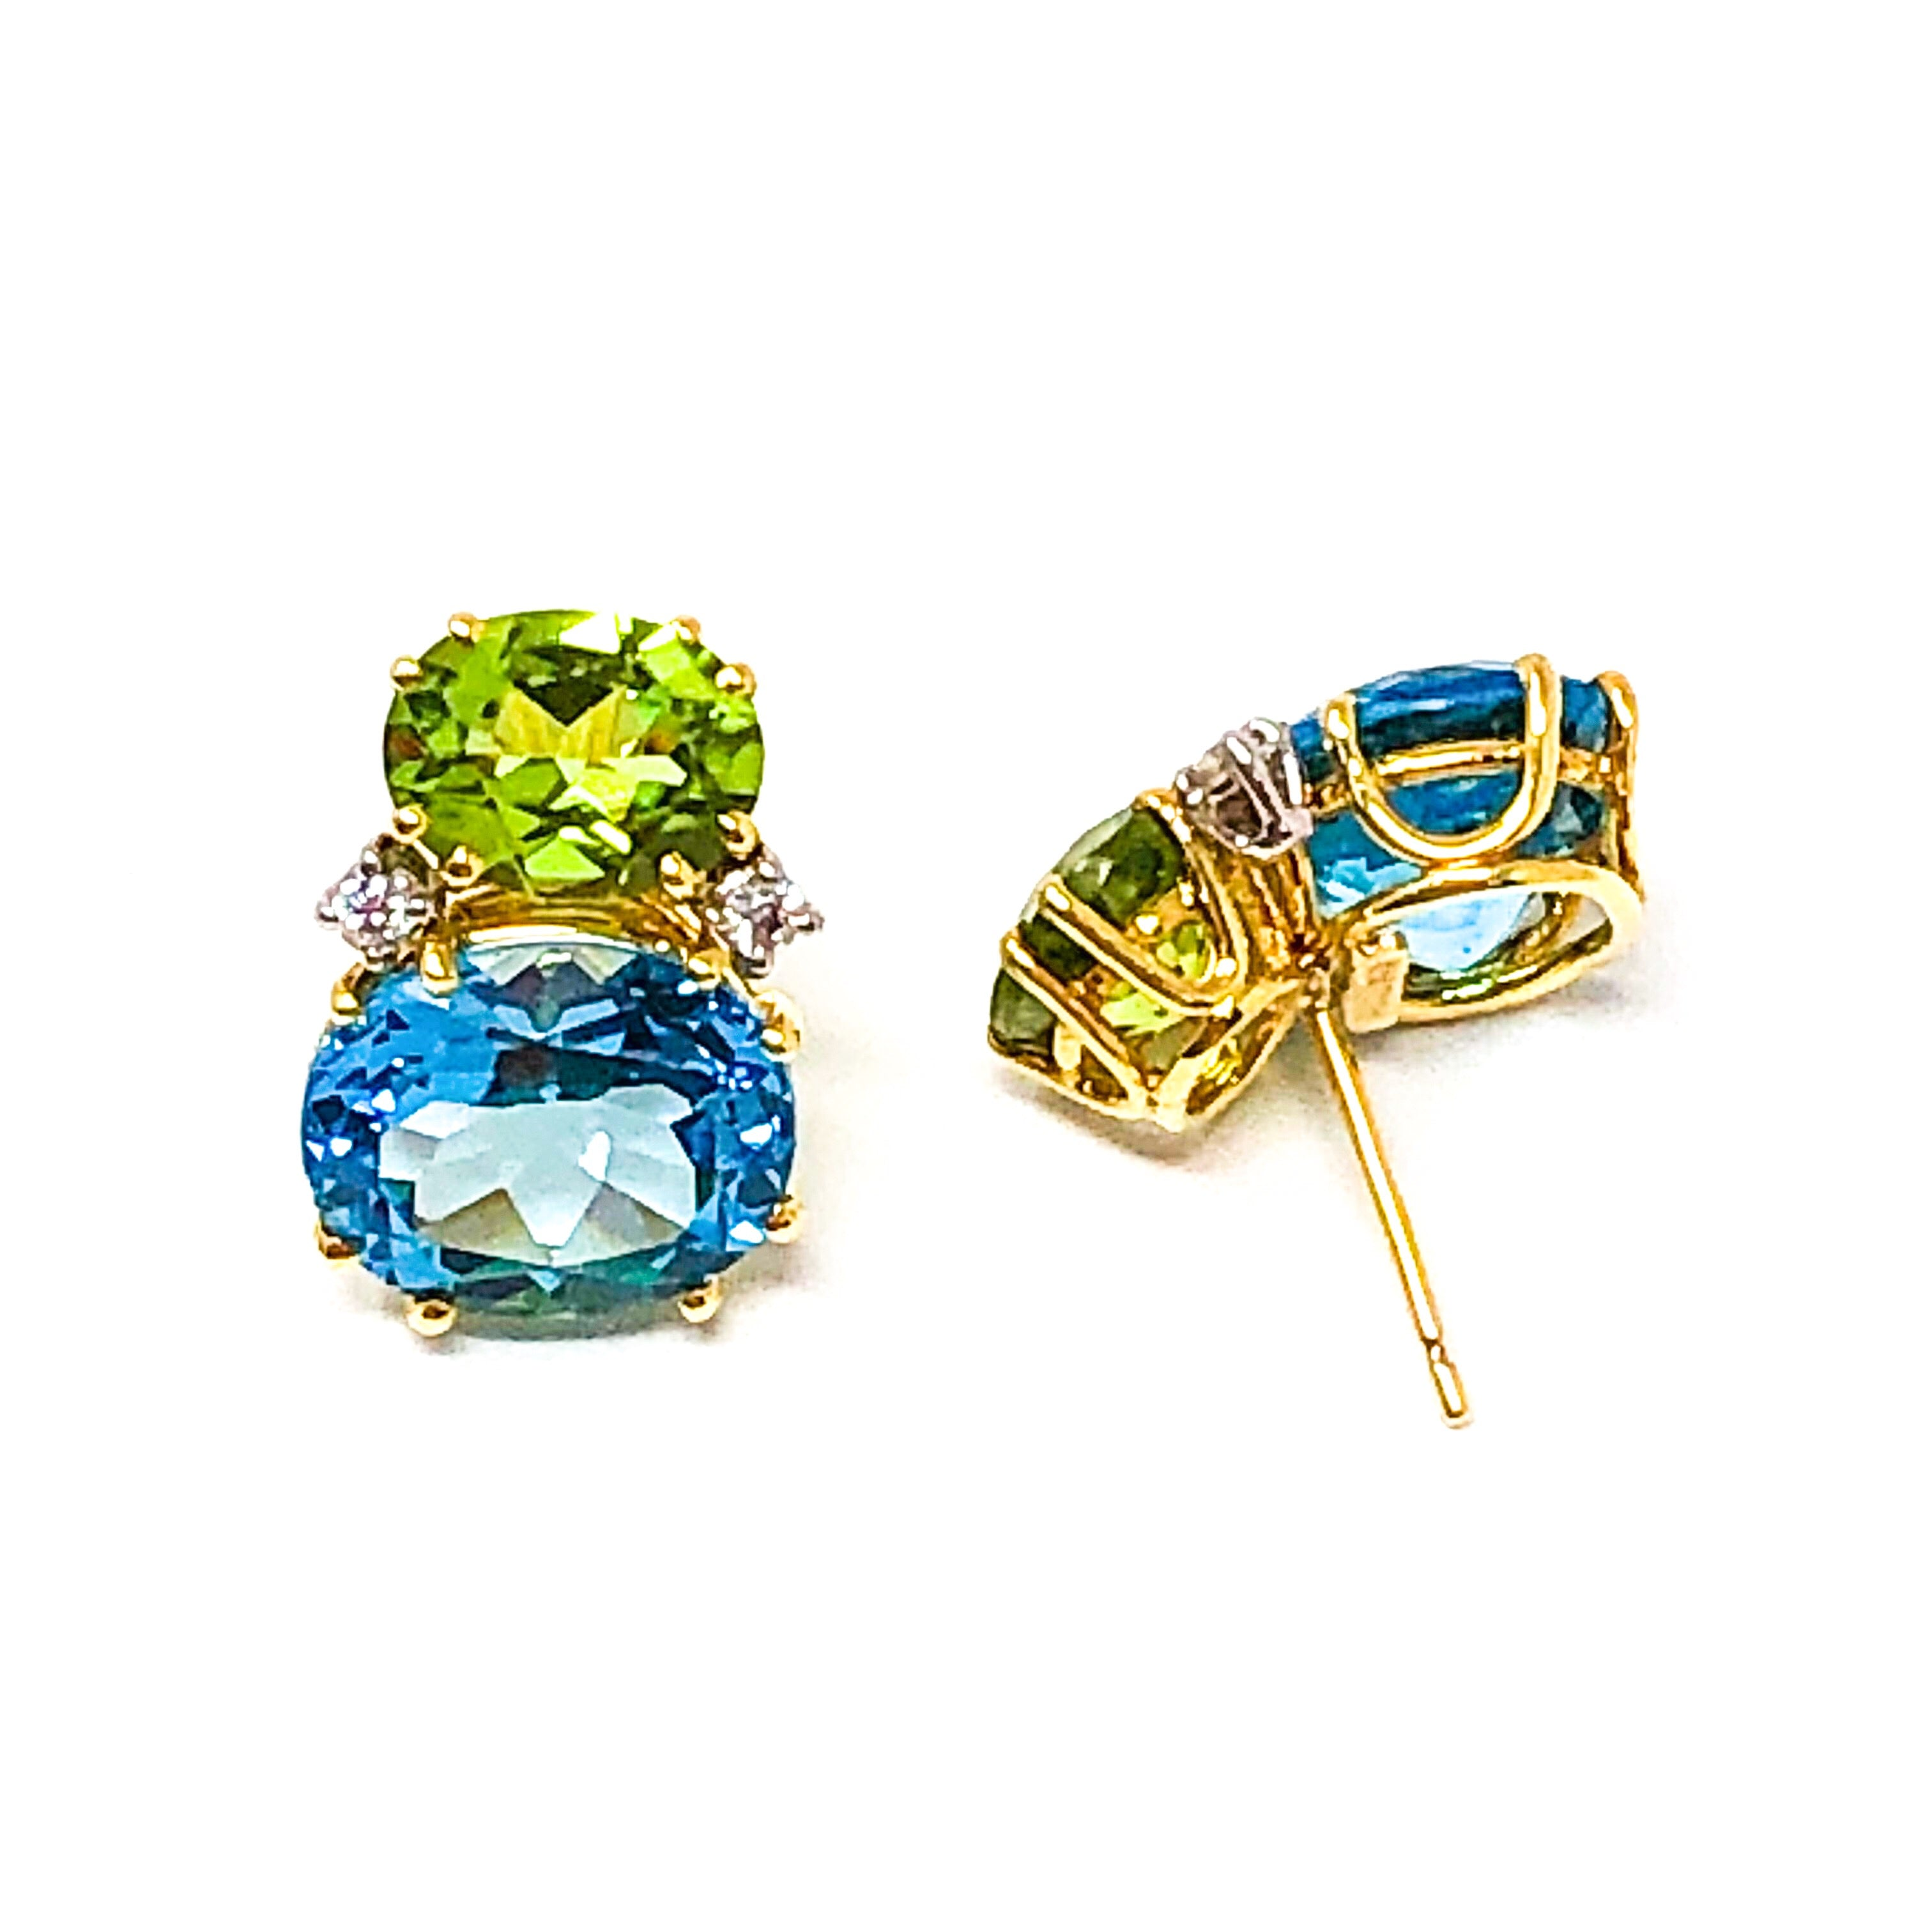 Blue Topaz and Peridot Earrings